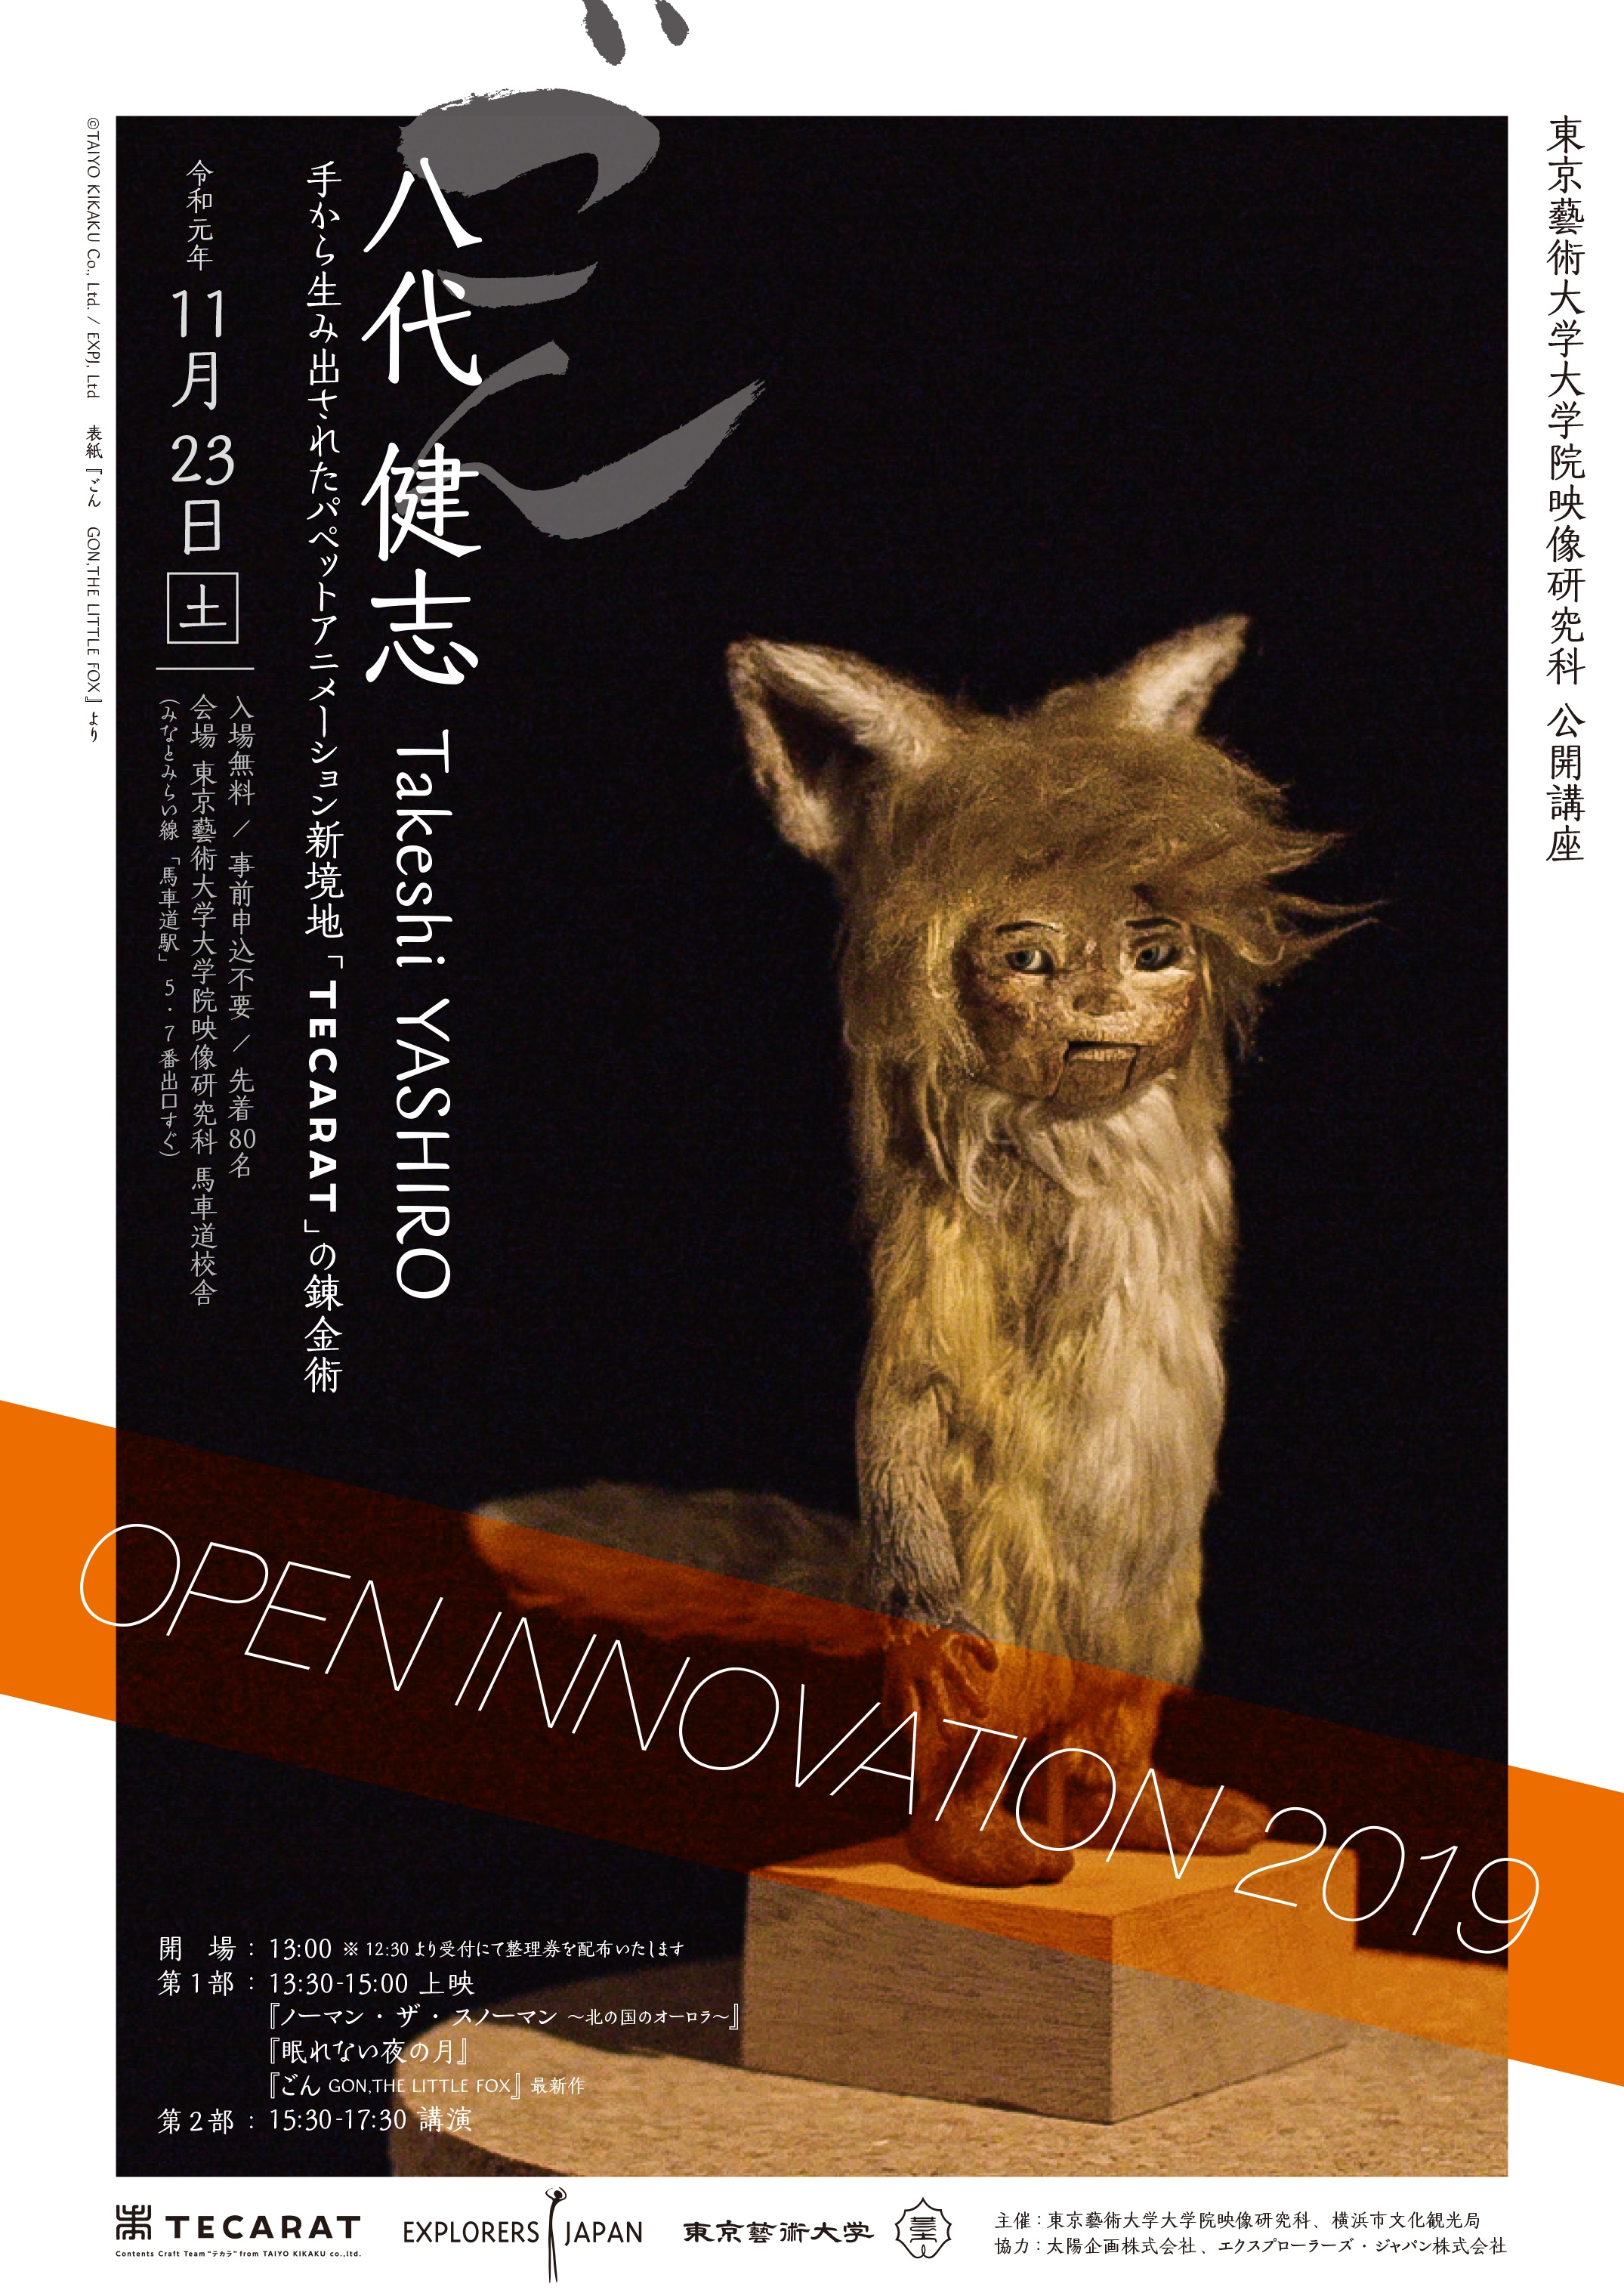 公開講座「OPEN INNOVATION 2019」